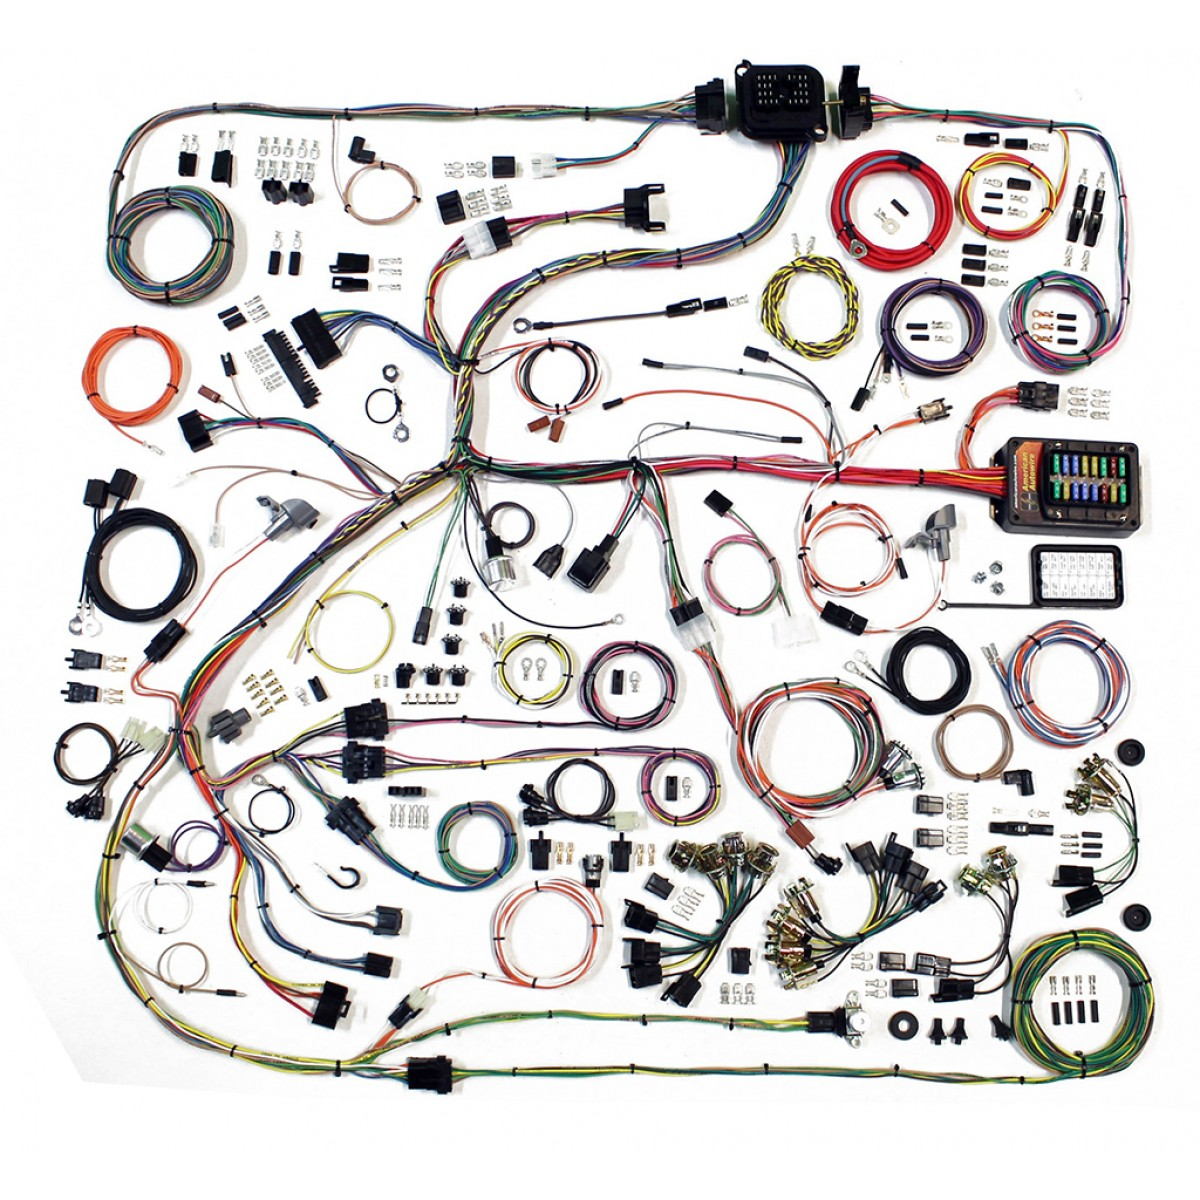 hight resolution of complete wiring harness kit 1968 70 plymouth satellite satellite wire harness satellite wire harness